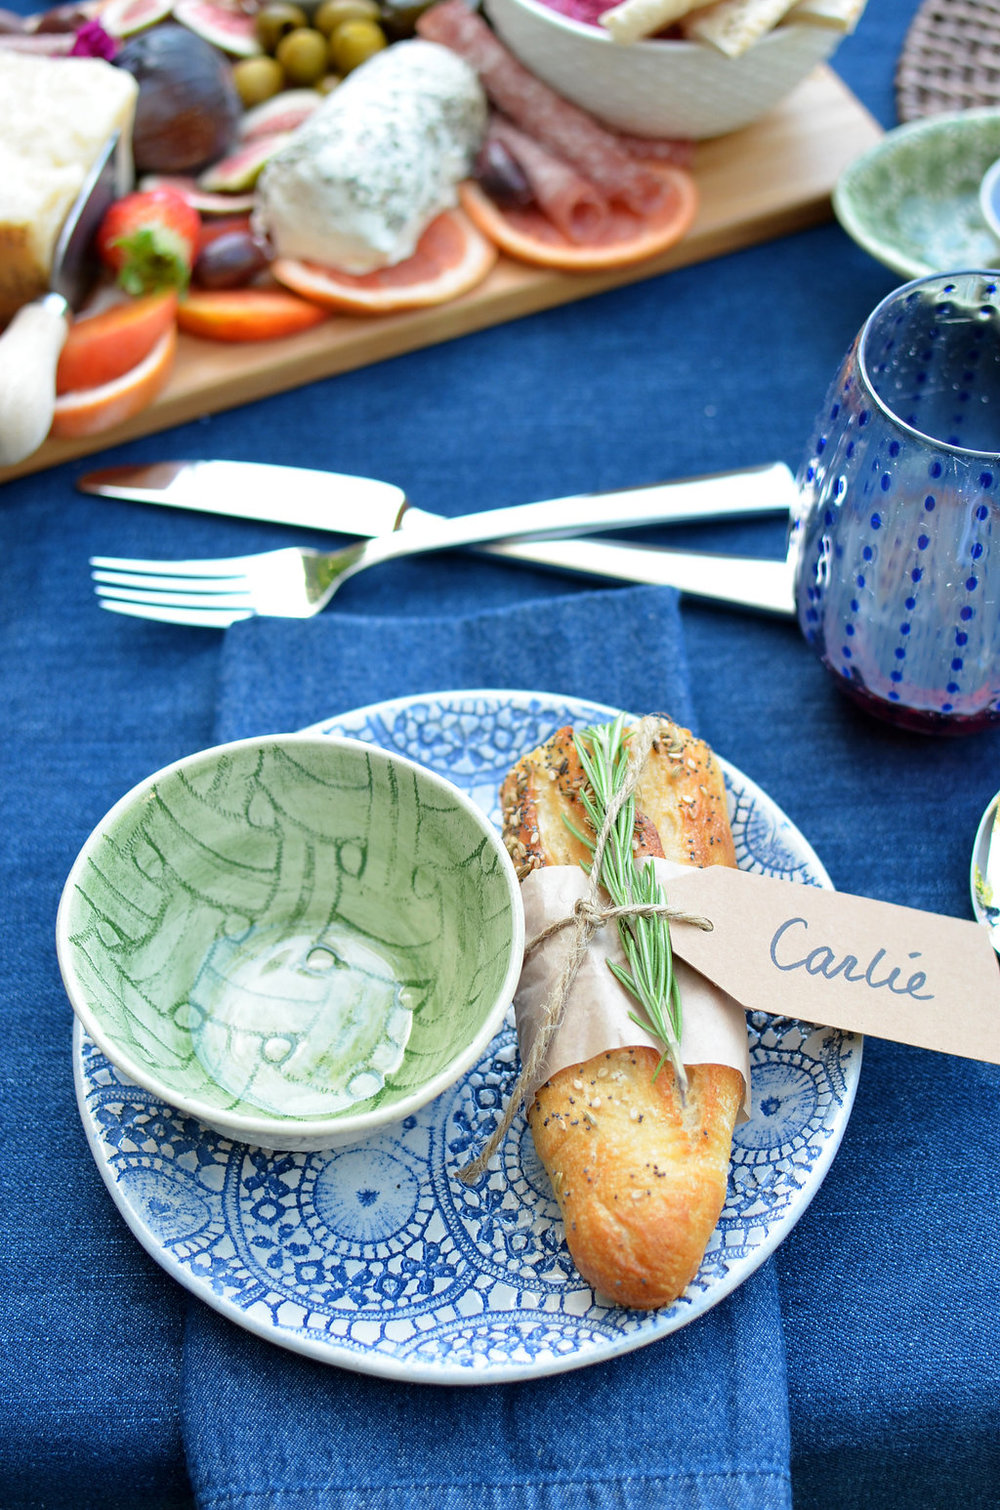 Shown here: Wonki Ware Blue Ferris Accent Plate, with a Wonki Ware Green Wheel Ramekin.